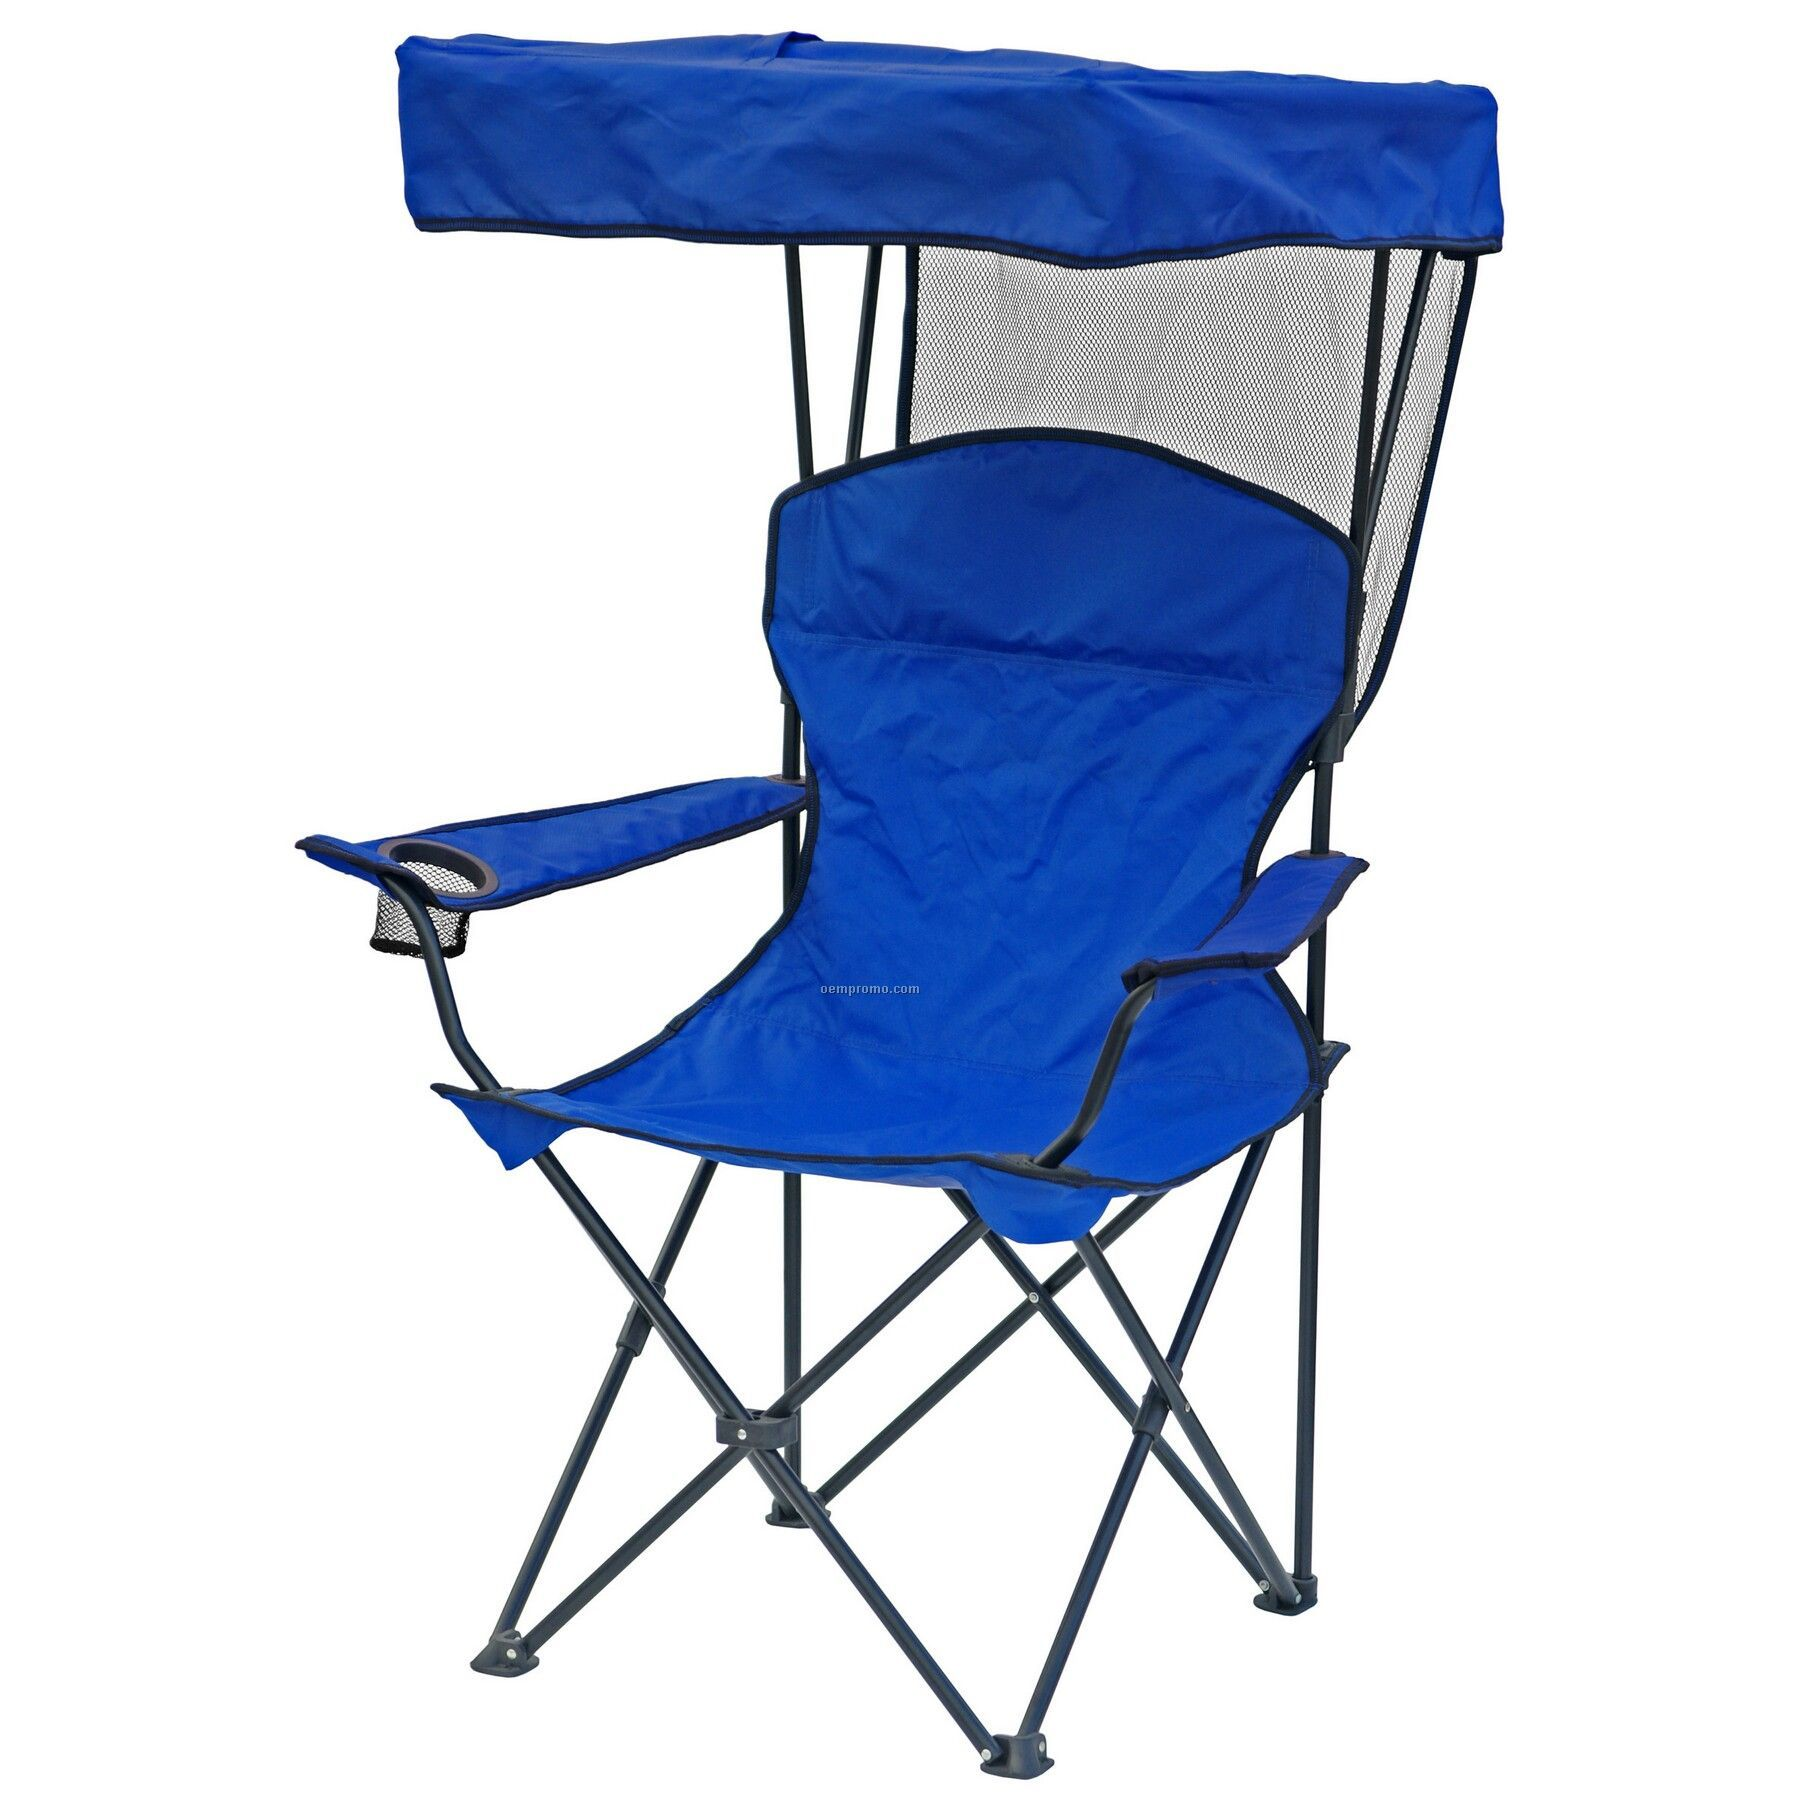 Chair With Umbrella Direct Import Folding Chair W Canopy Arm Rests And Carry Bag